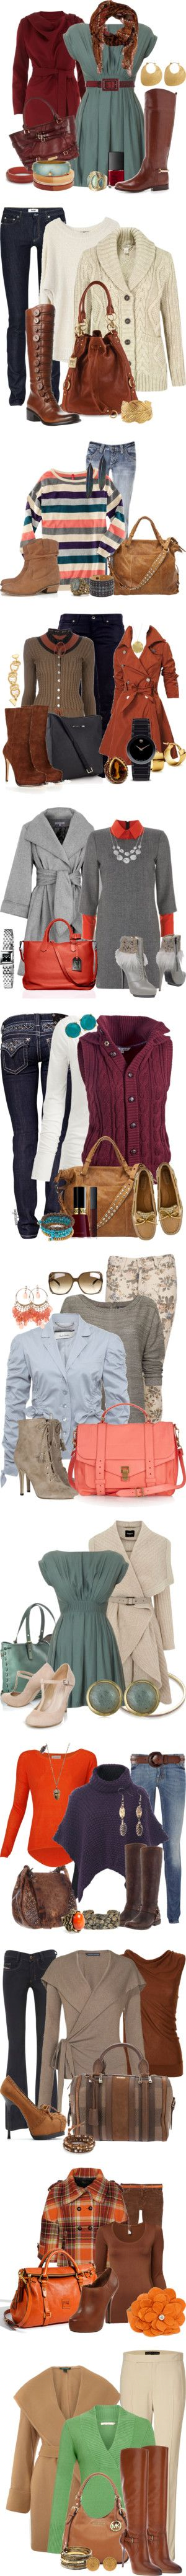 Fall outfits! I like most of them!